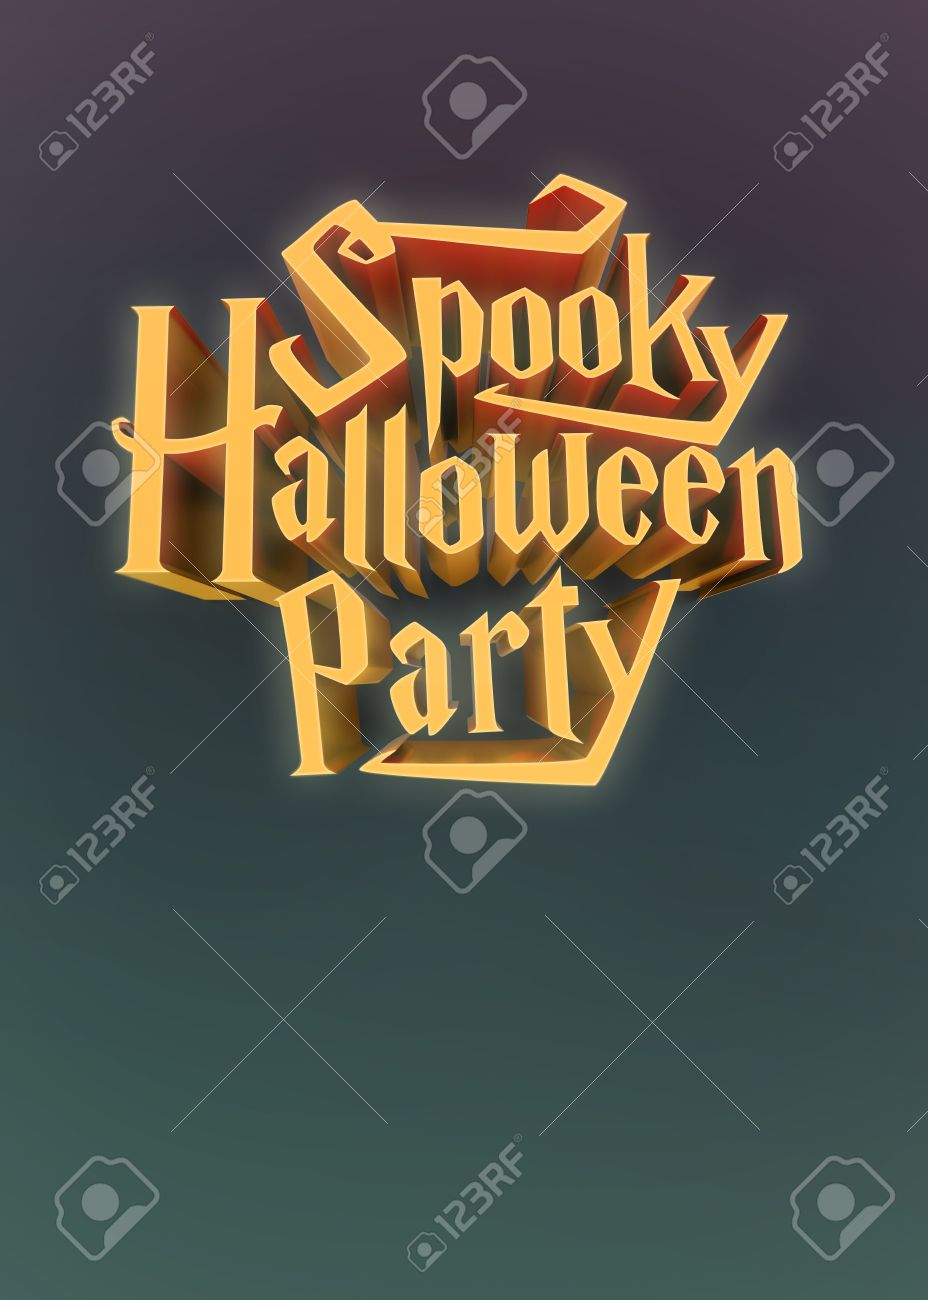 Spooky Halloween Party Glowing Orange Letters 3d For Poster ...